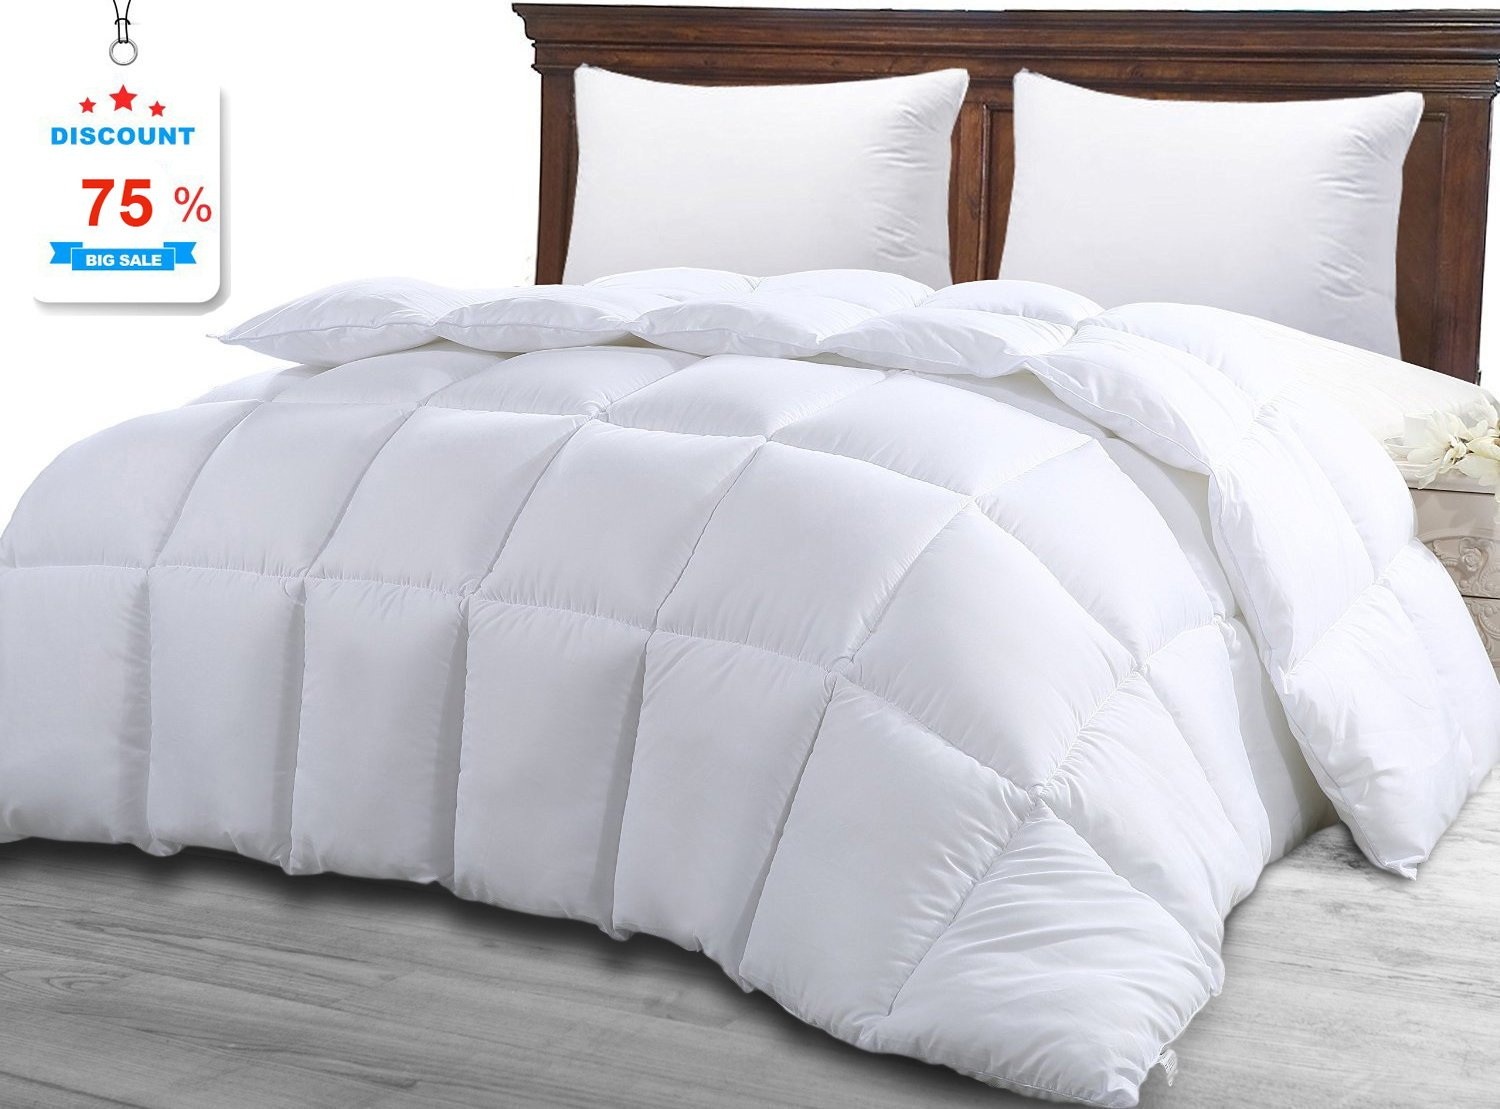 Universal Bedding Limited Offer - Hotel Collection King Comforter Duvet Insert White - Hypoallergenic, Plush Siliconized Fiberfill, Box Stitched Down Alternative Comforter